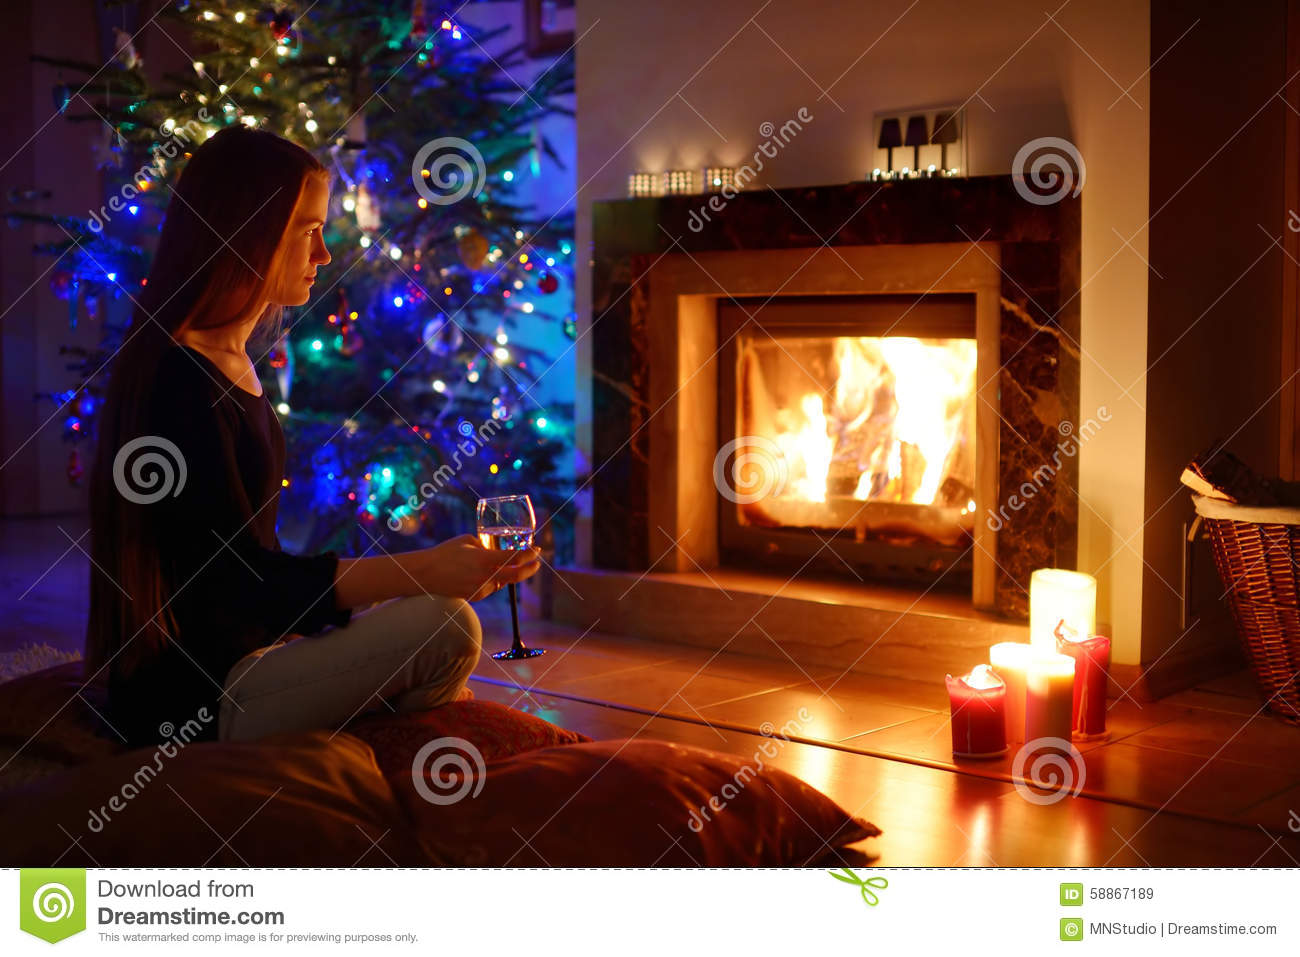 Woman Having A Drink By A Fireplace In A On Christmas Stock Photo